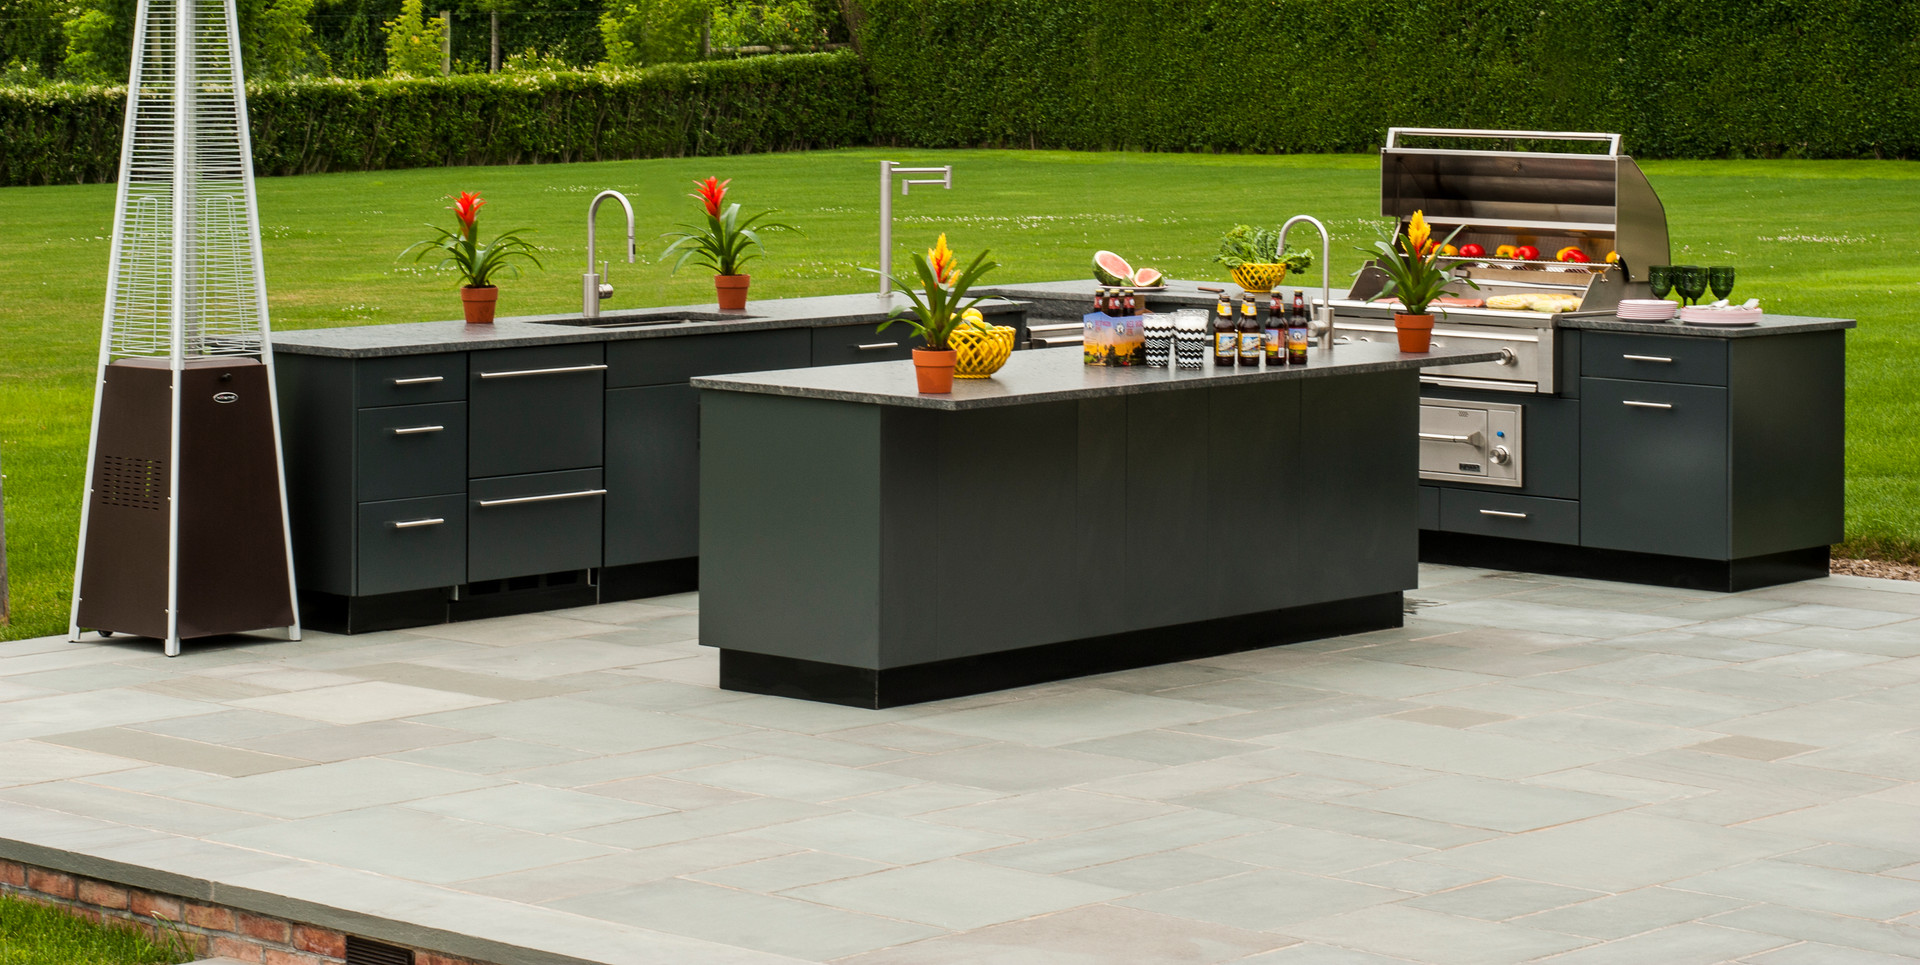 Outdoor Kitchen Modern Design